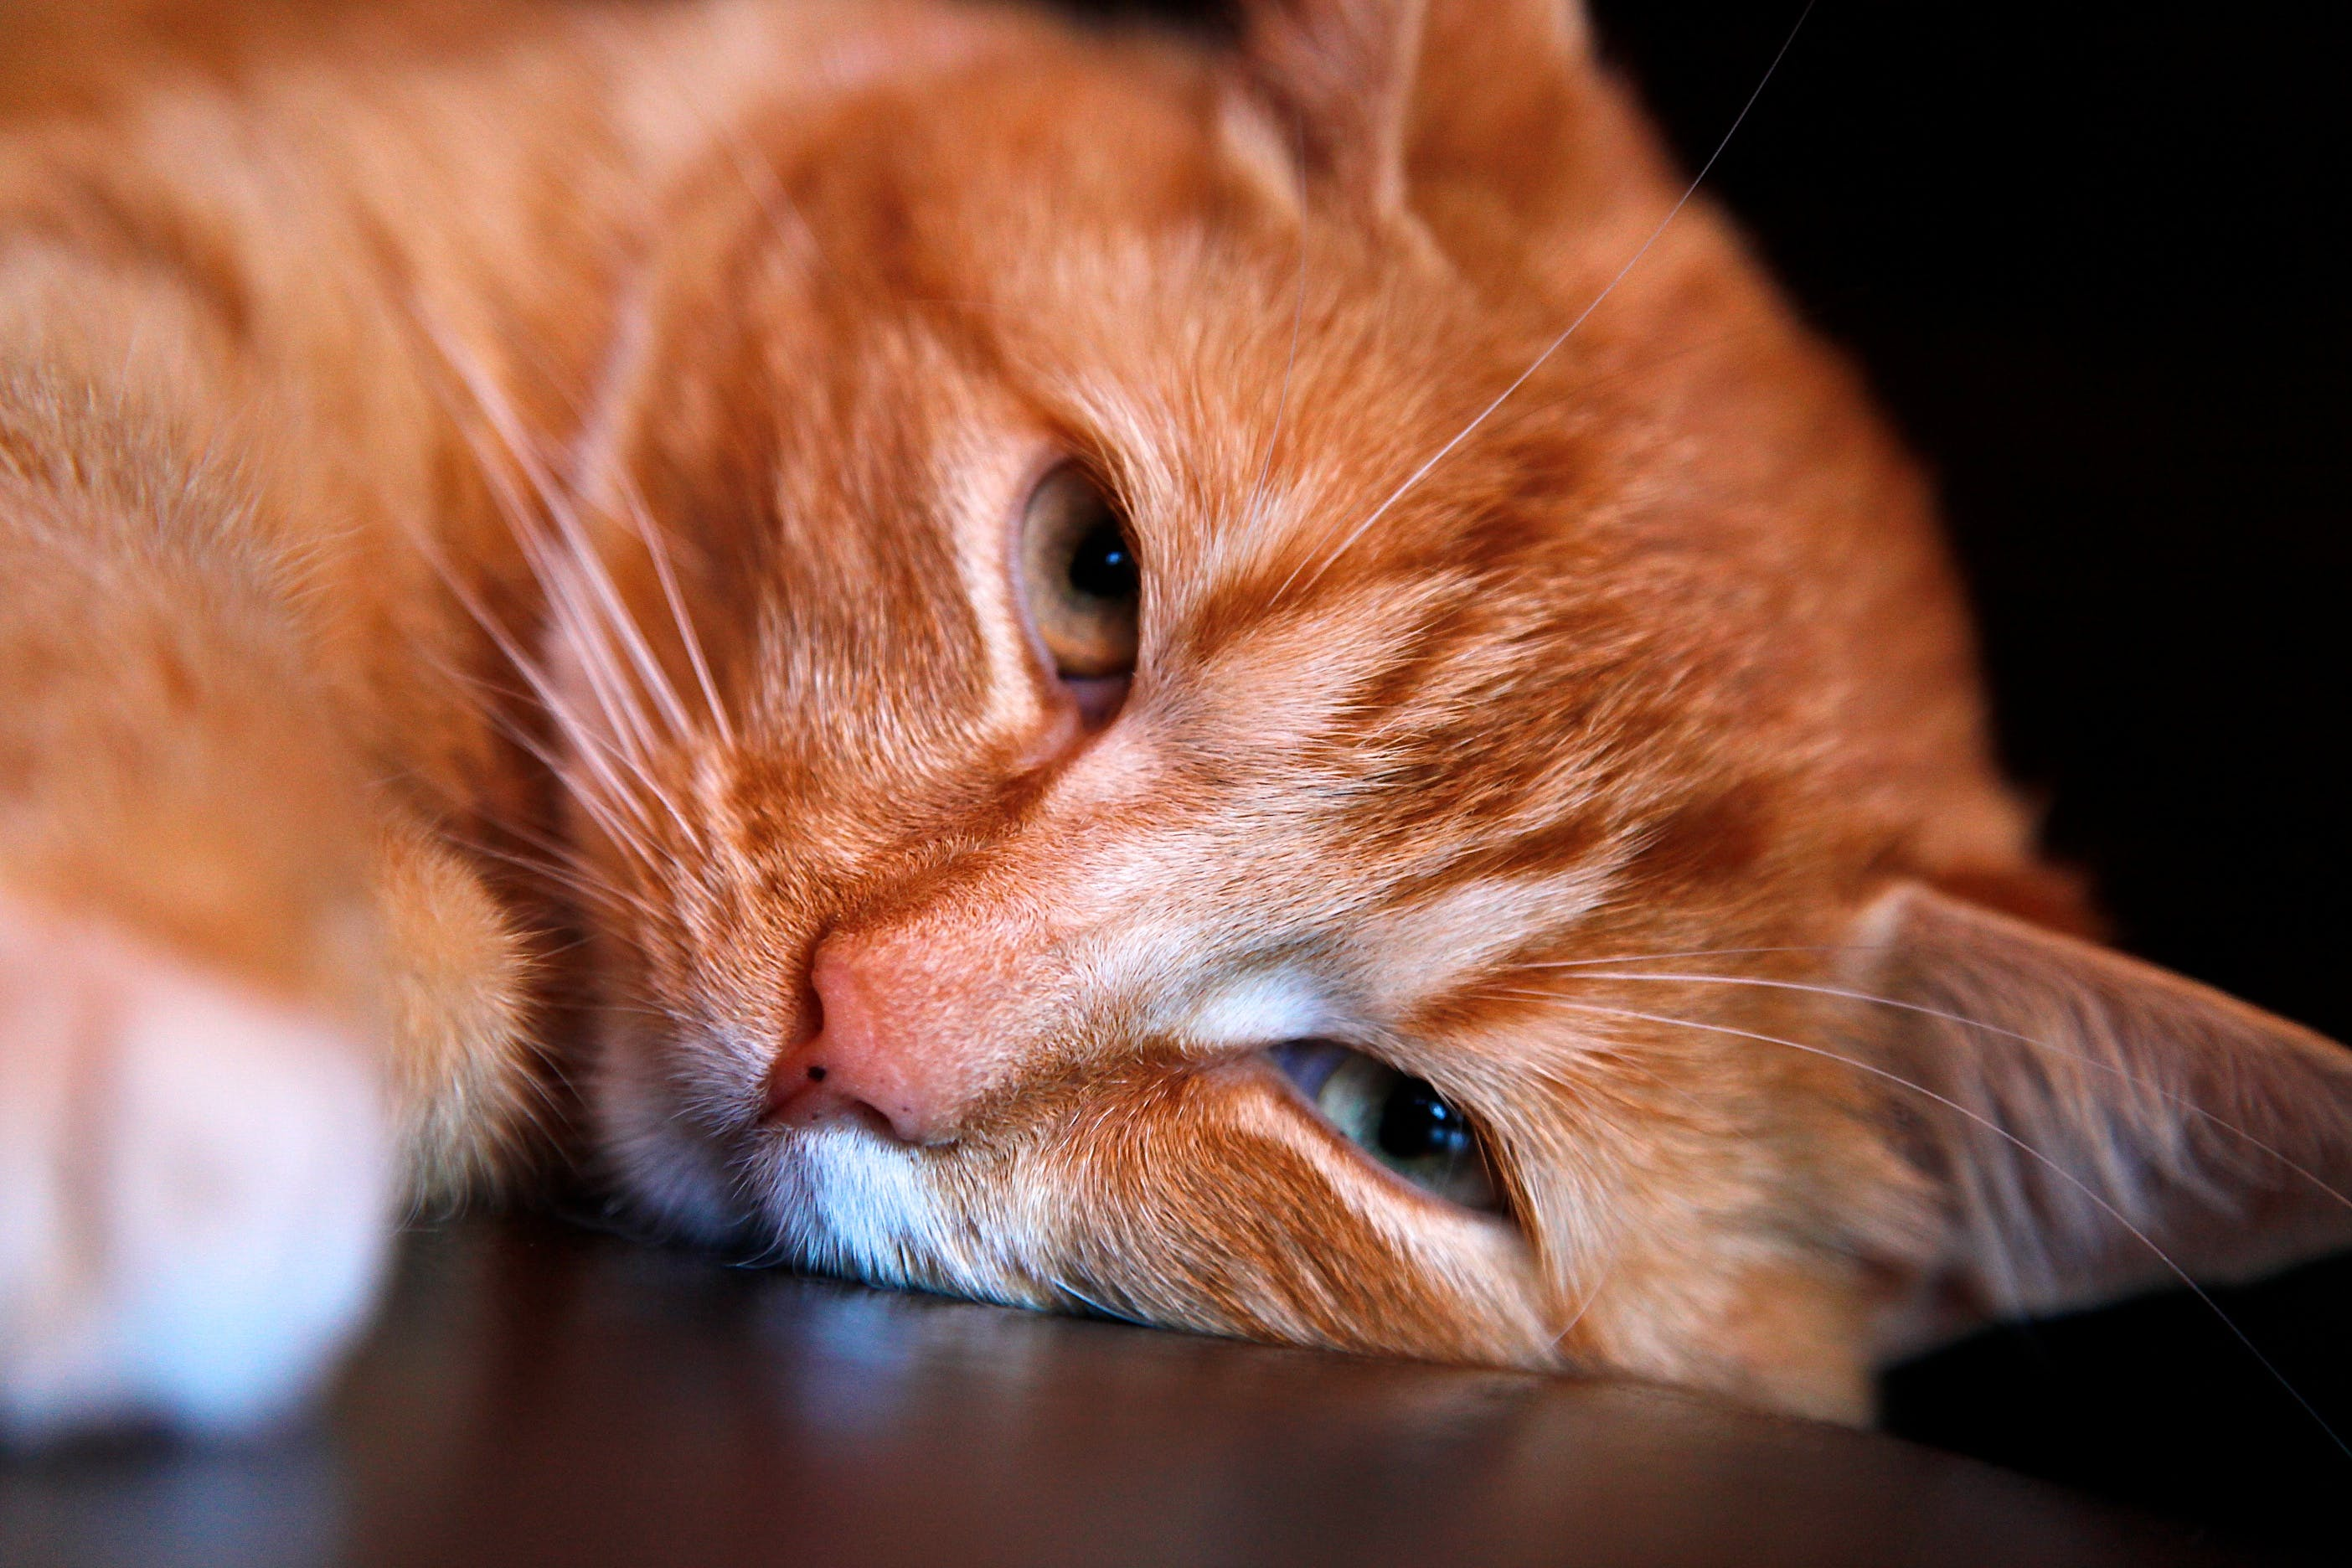 Orange Tabby Cat Leaning Head on Brown Surface